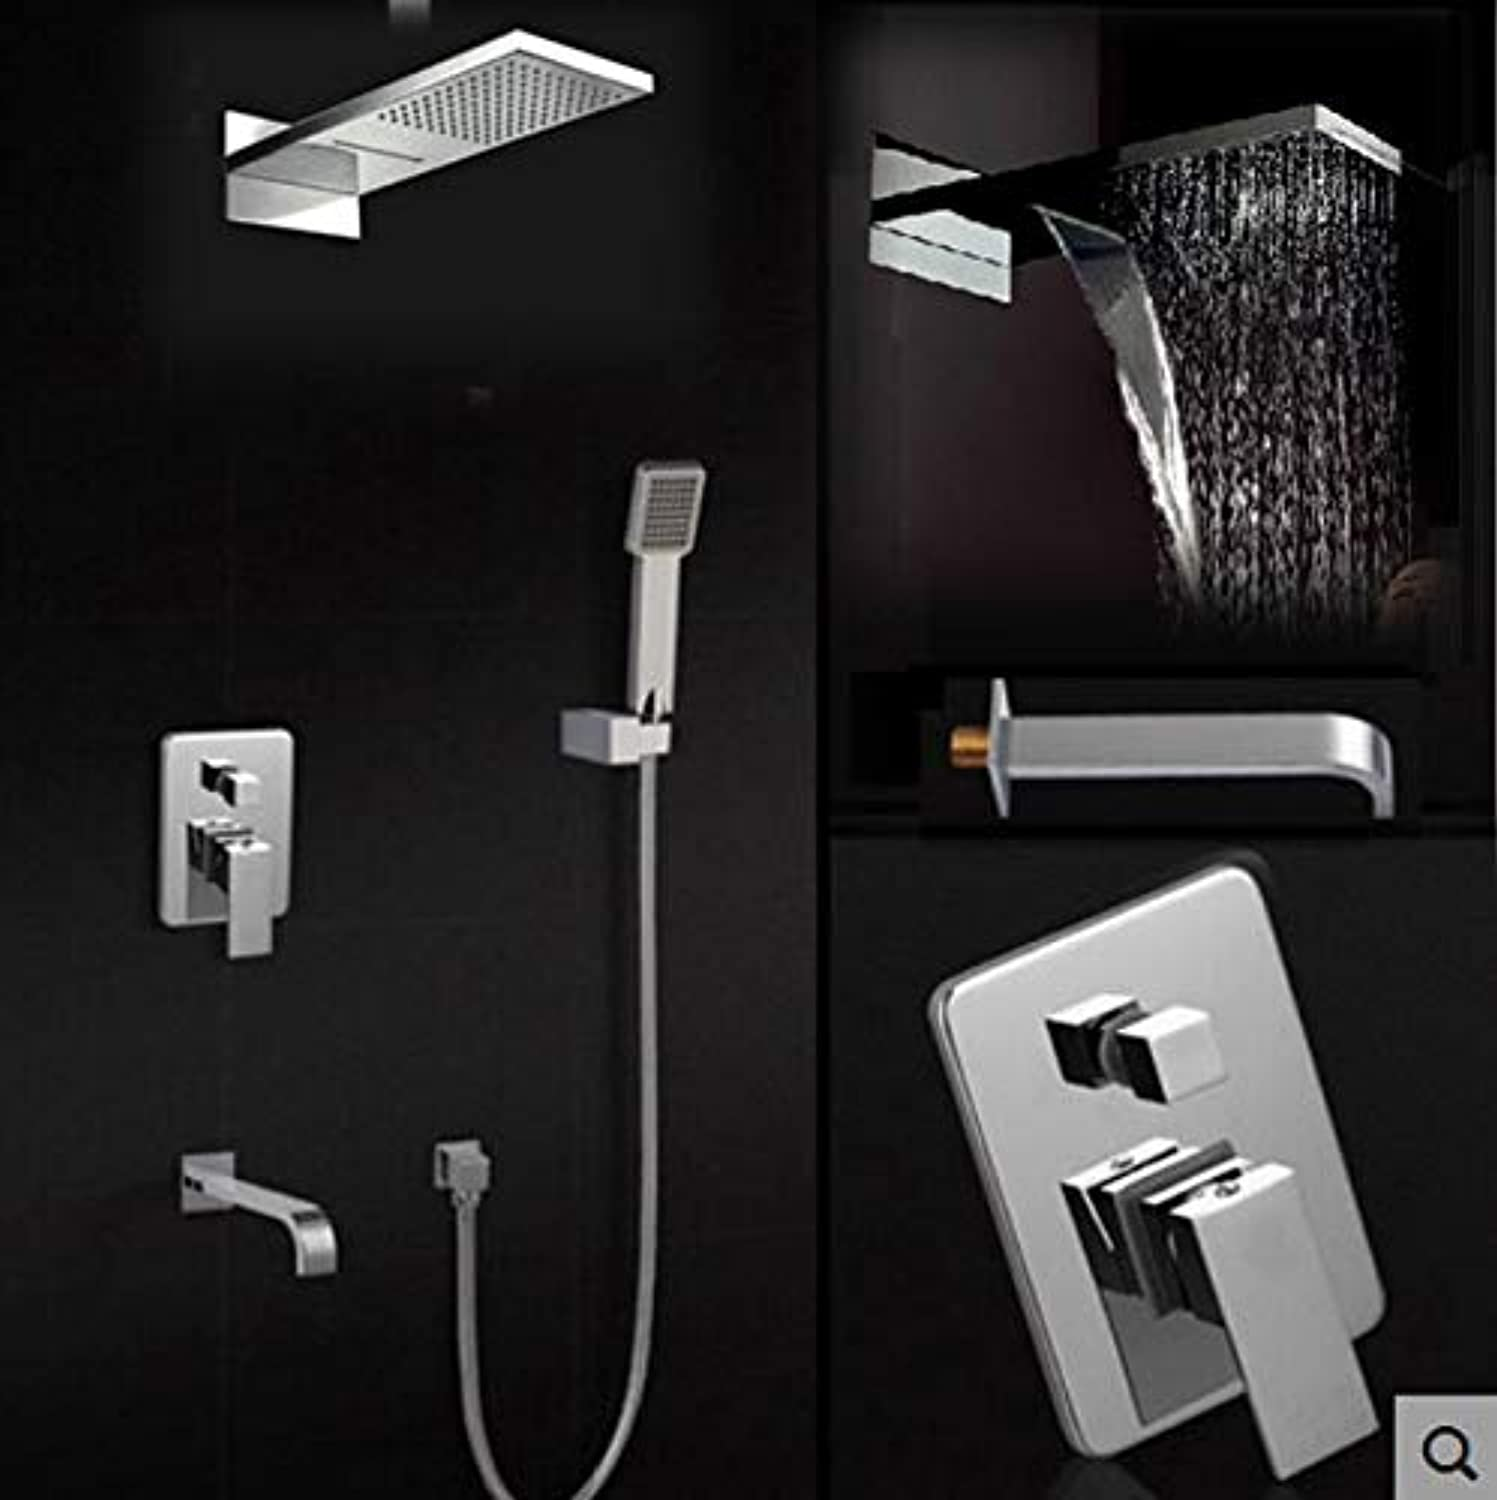 Luxury Rain Waterfall Shower Faucet Mixer Taps Wall Mount Bath Shower Faucet Set with Handshower Chrome Finish,Clear